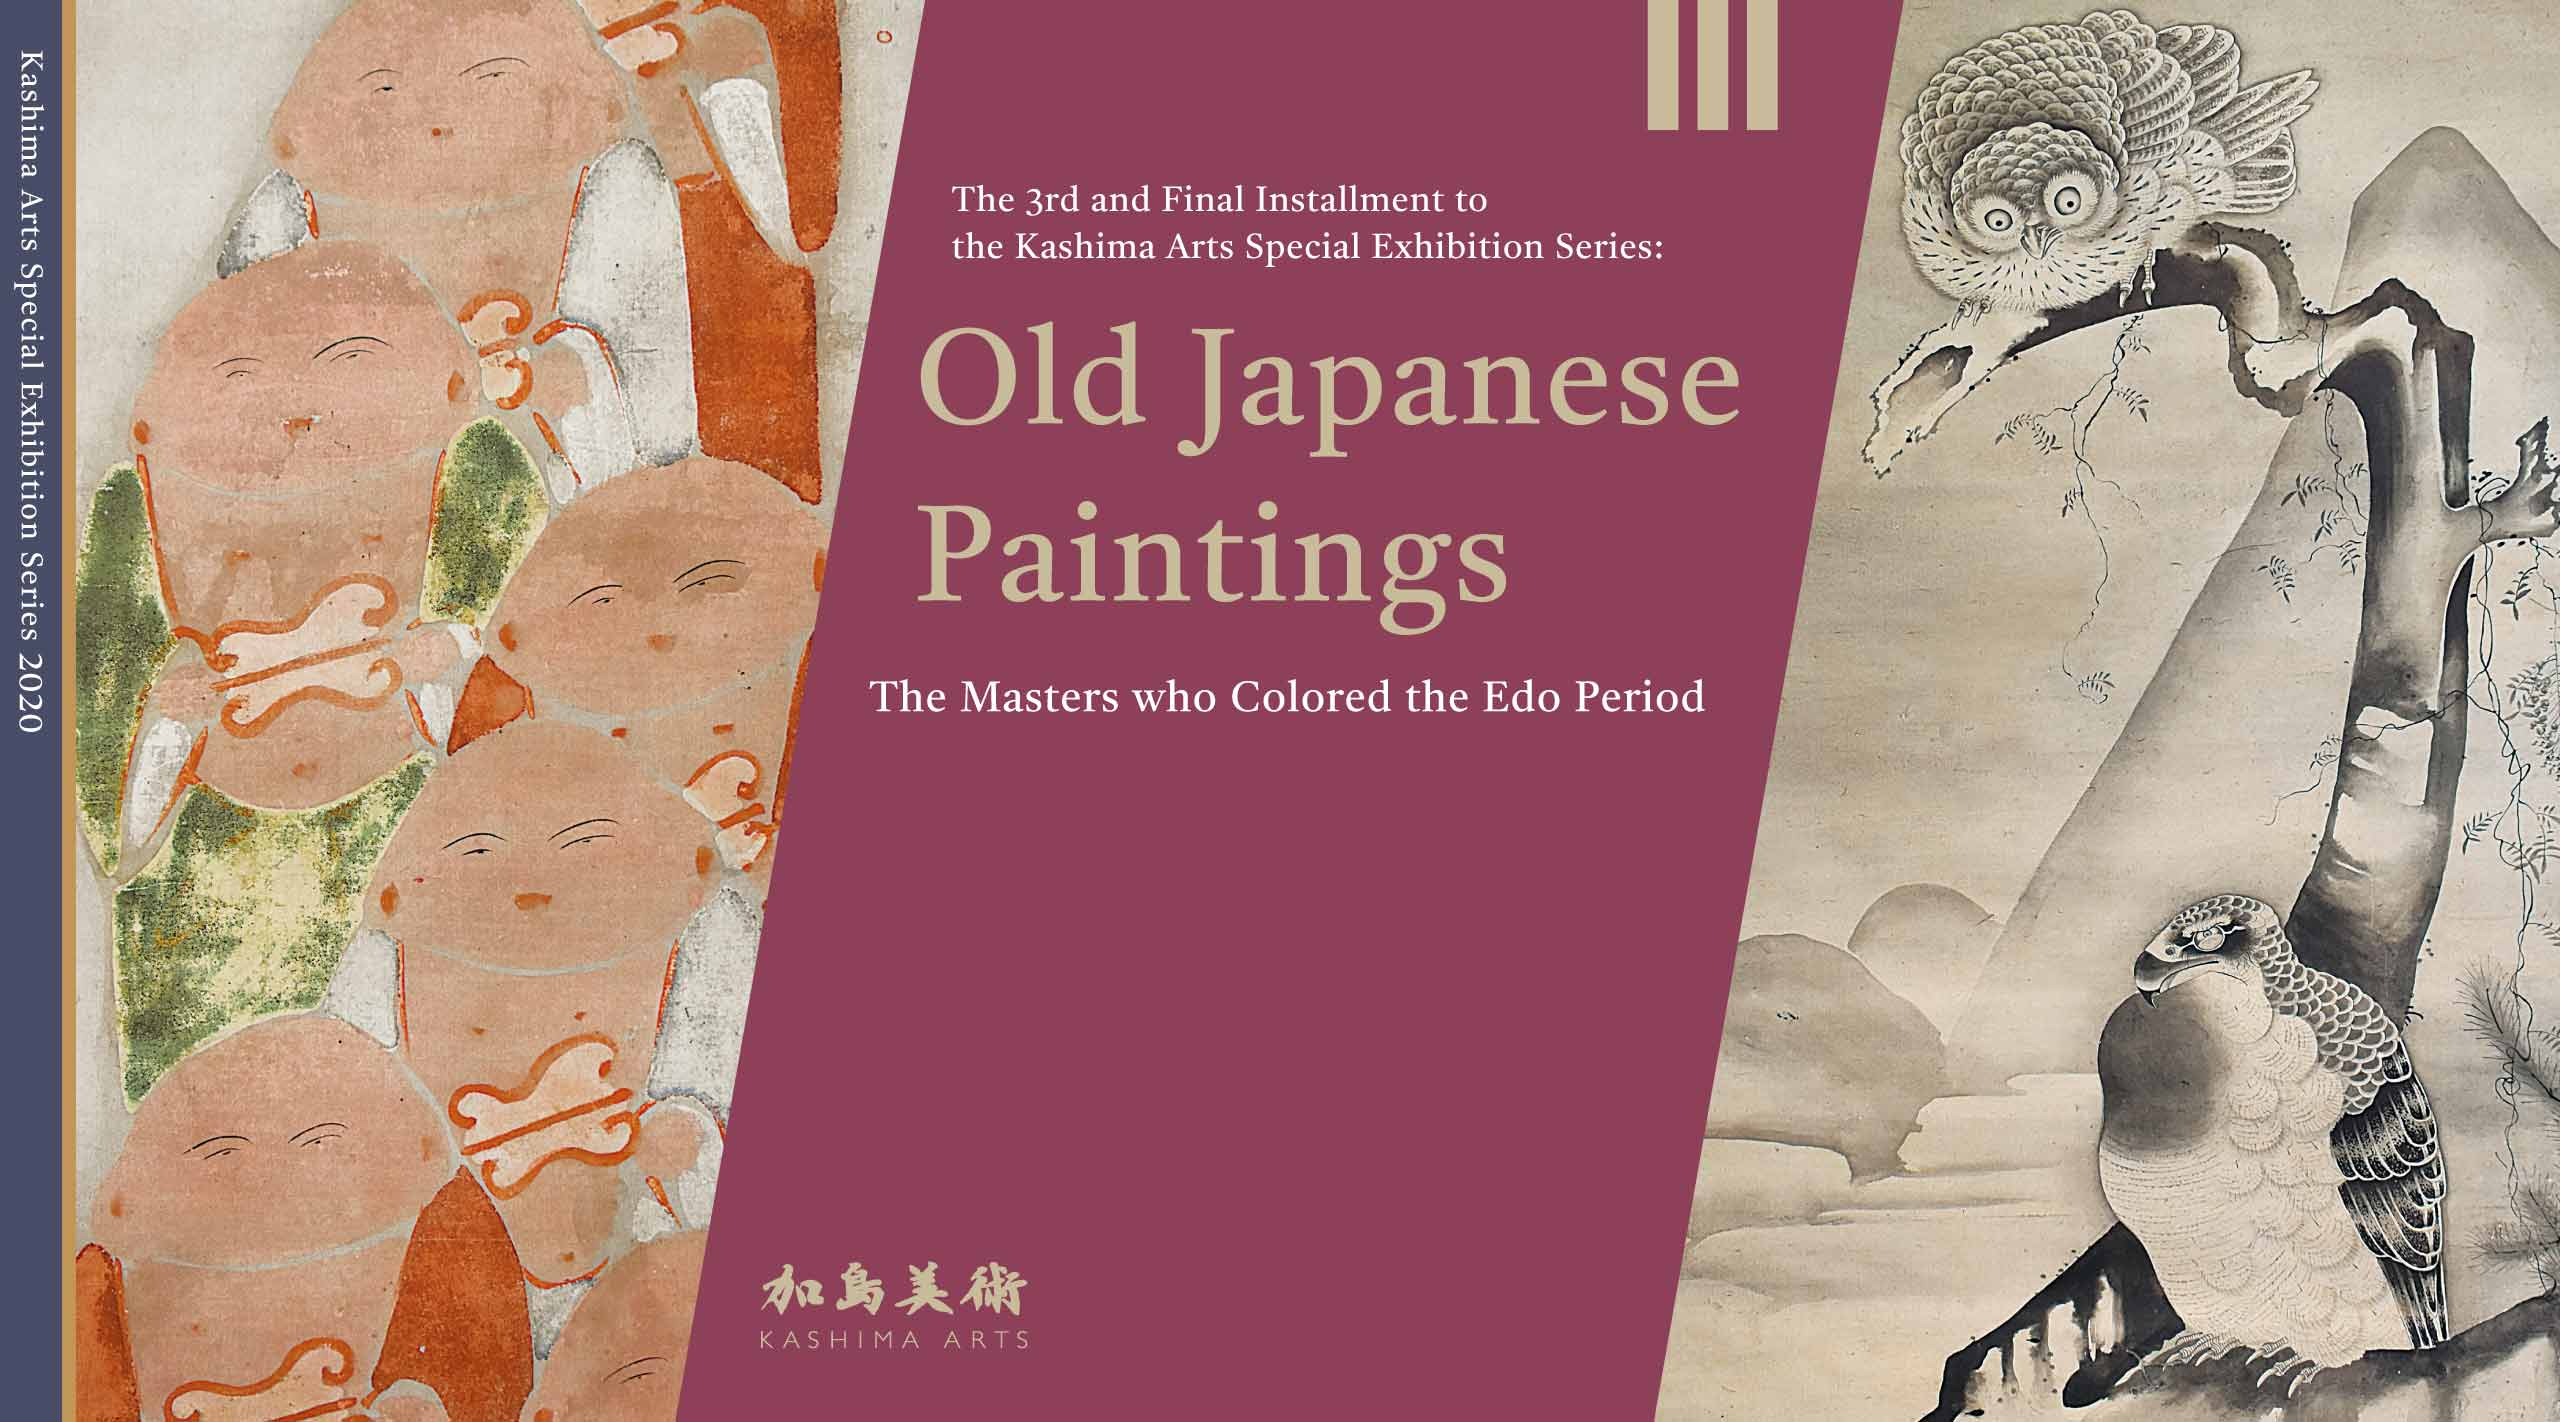 Old Japanese Paintings: The Masters who Colored the Edo Period